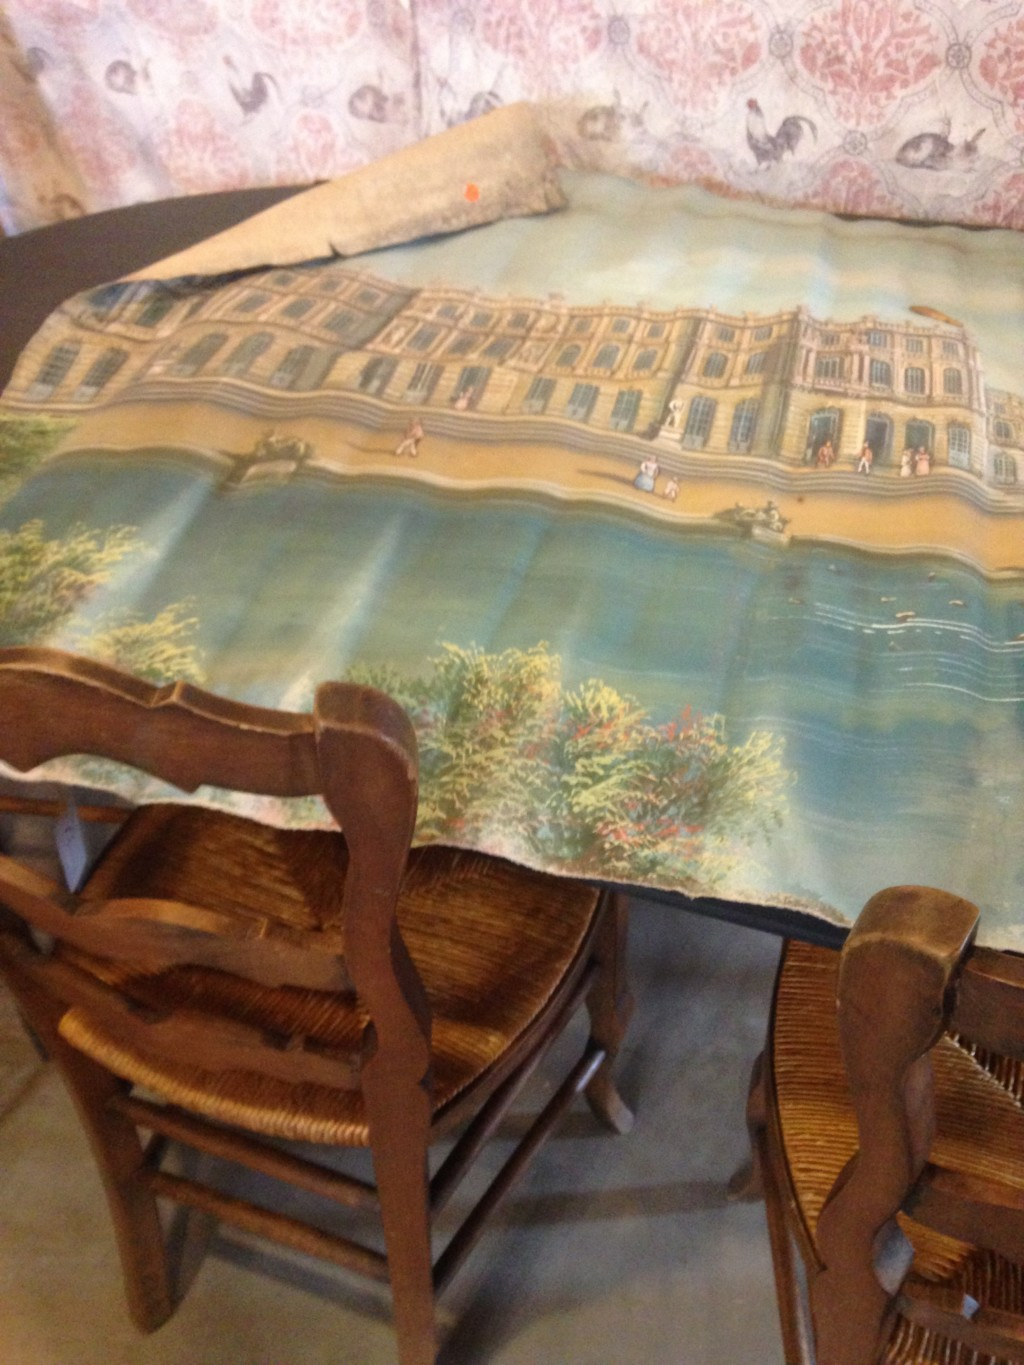 This piece just tickles me. It's a 4' wide canvas depicting Versailles circa 1900. I'm not sure if it's a prop or promotional image. But it's just so cool!